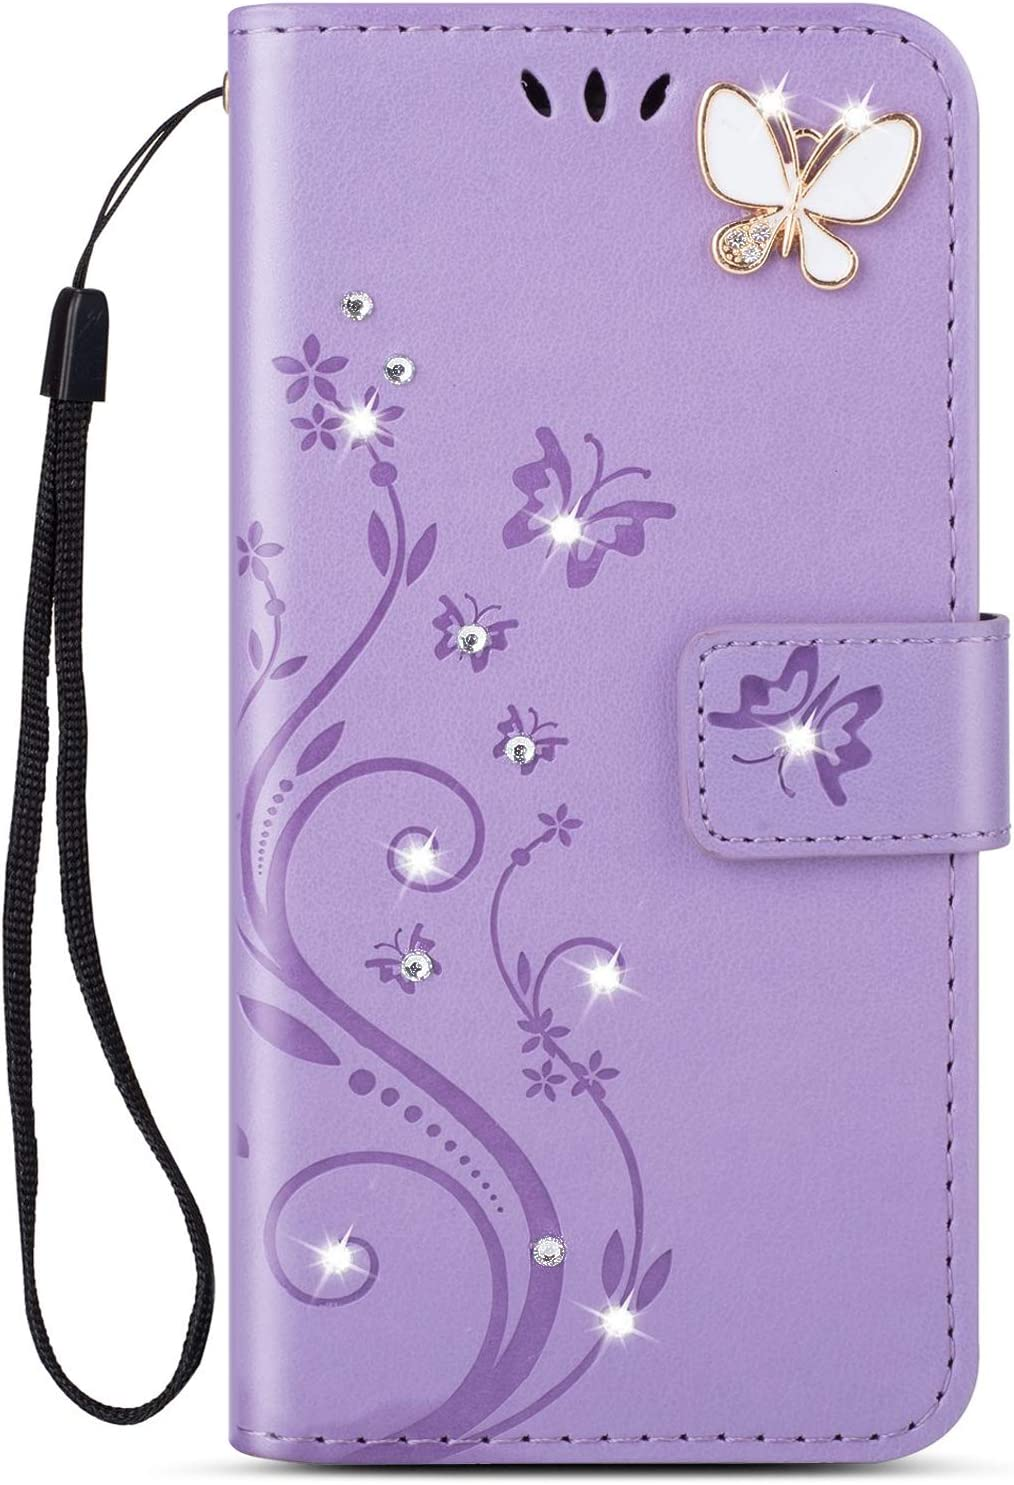 Herbests Compatible with Huawei Mate 20 Pro Wallet Case Protective Flip Leather Cover Retro Luxury 3D Glitter Sparkle Pattern Design Phone Case Card Holder with Kickstand,Pink Flower